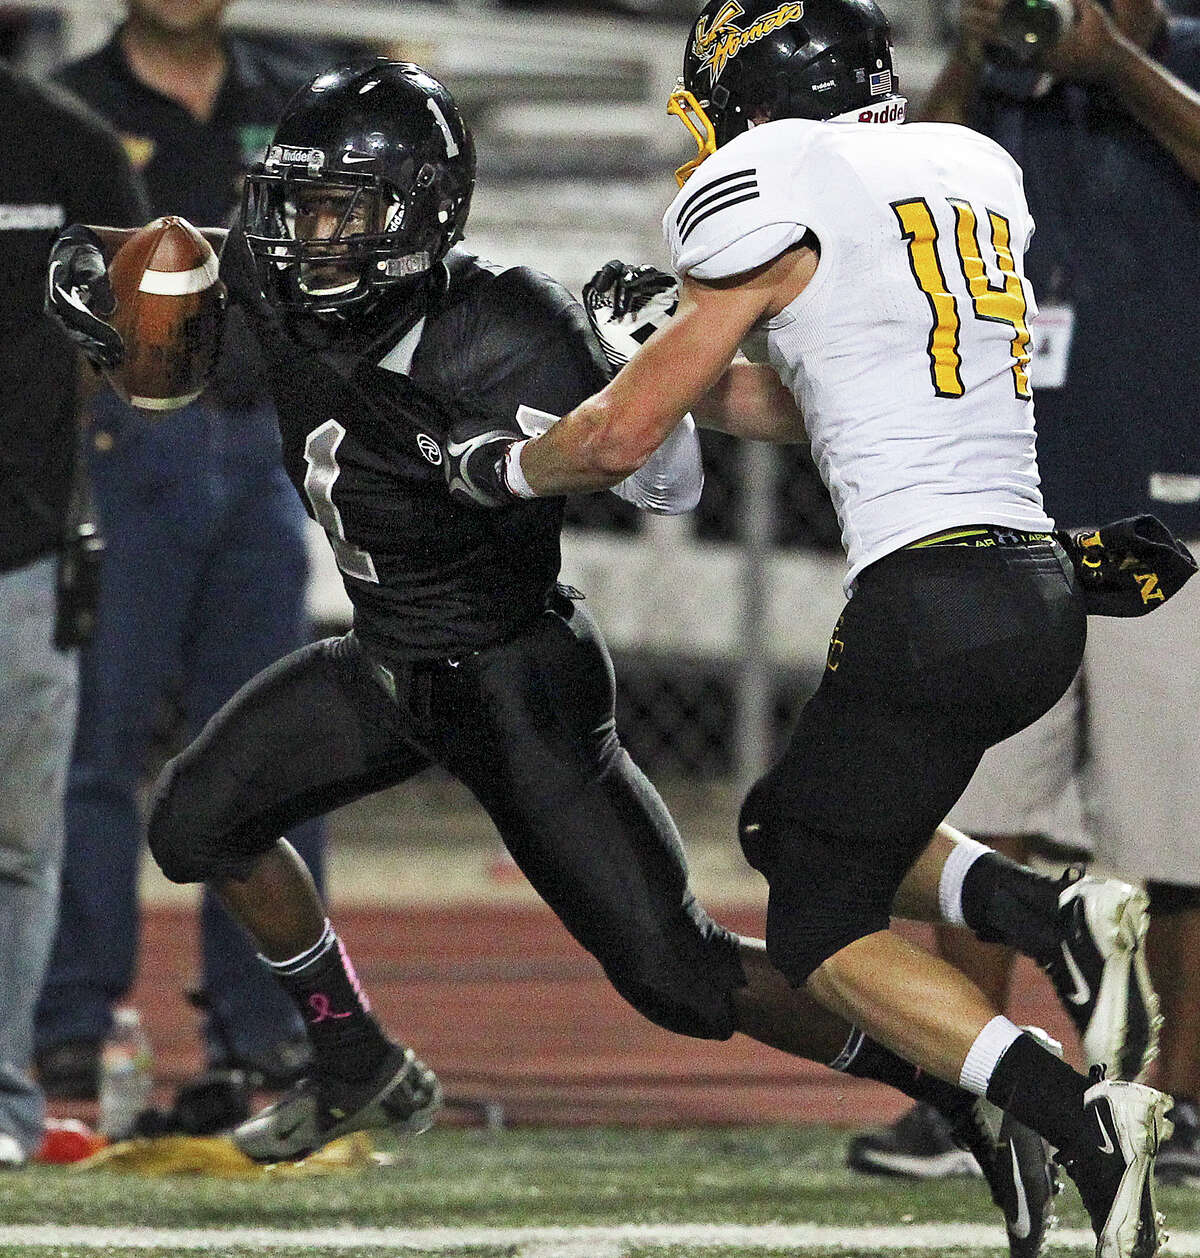 Knight running back Jaylen Harris nearly breaks loose on a long catch against Russell Brown as Steele hosts East Central at Lehnhoff Stadium on October 25, 2012.